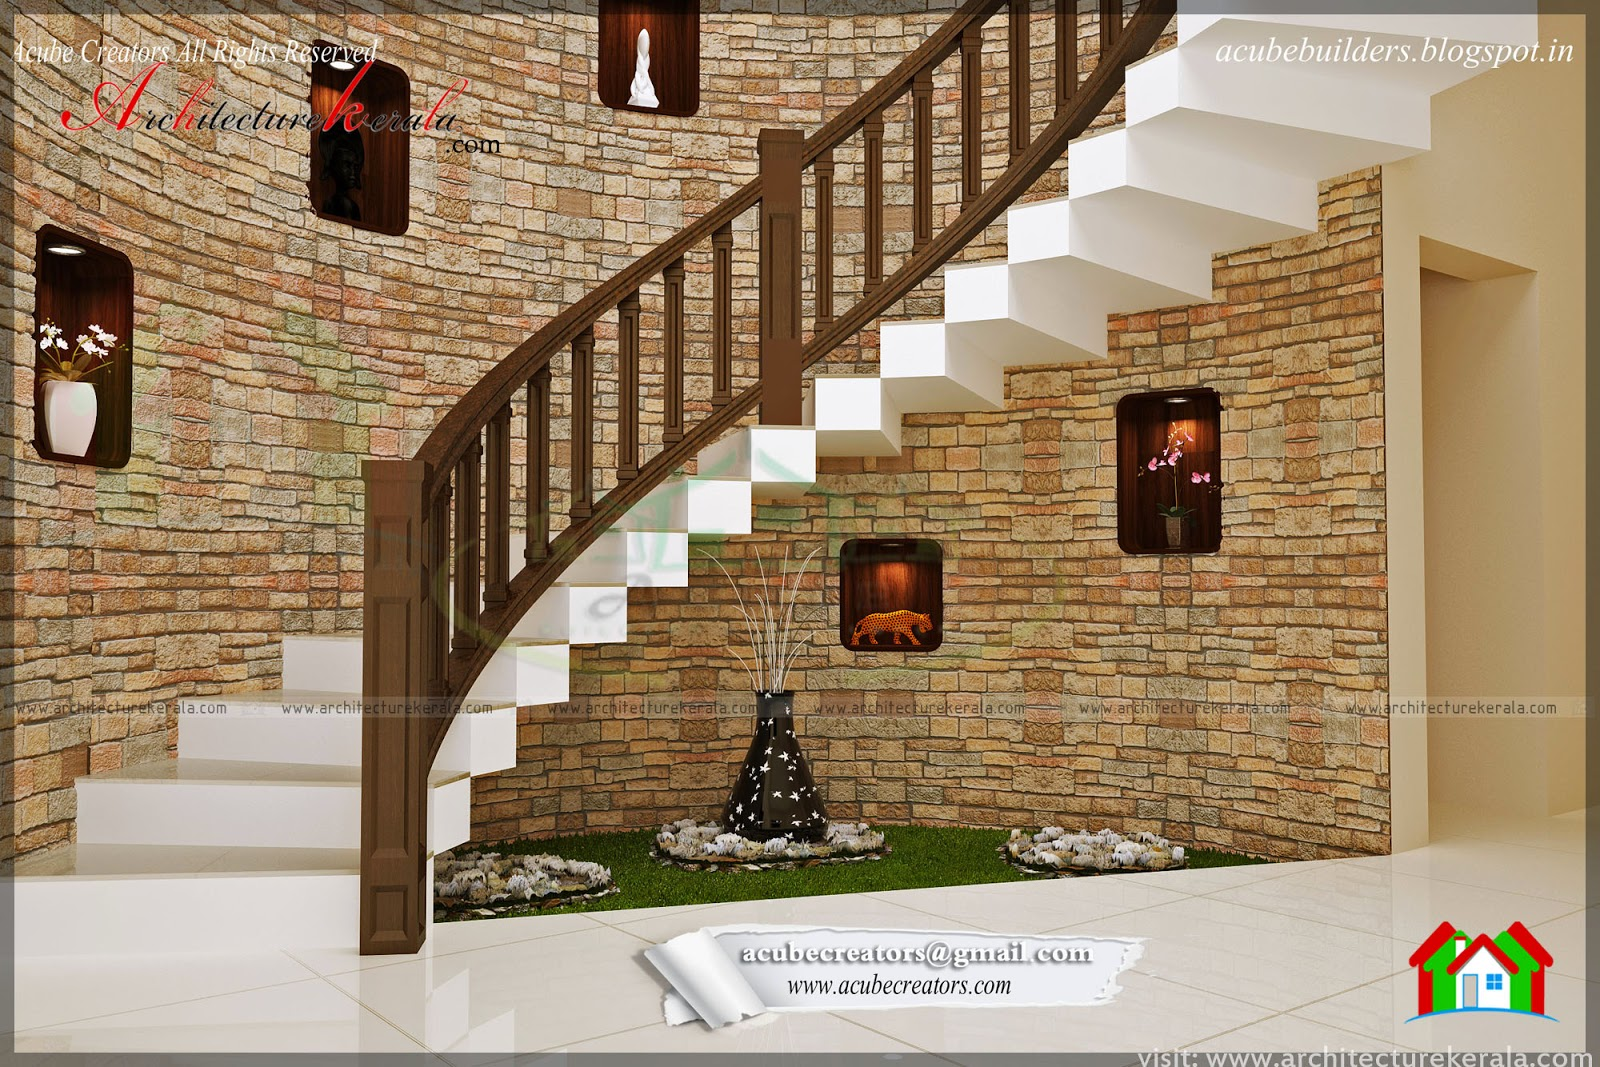 Beautiful stair interior design architecture kerala for Interior design ideas for small homes in kerala